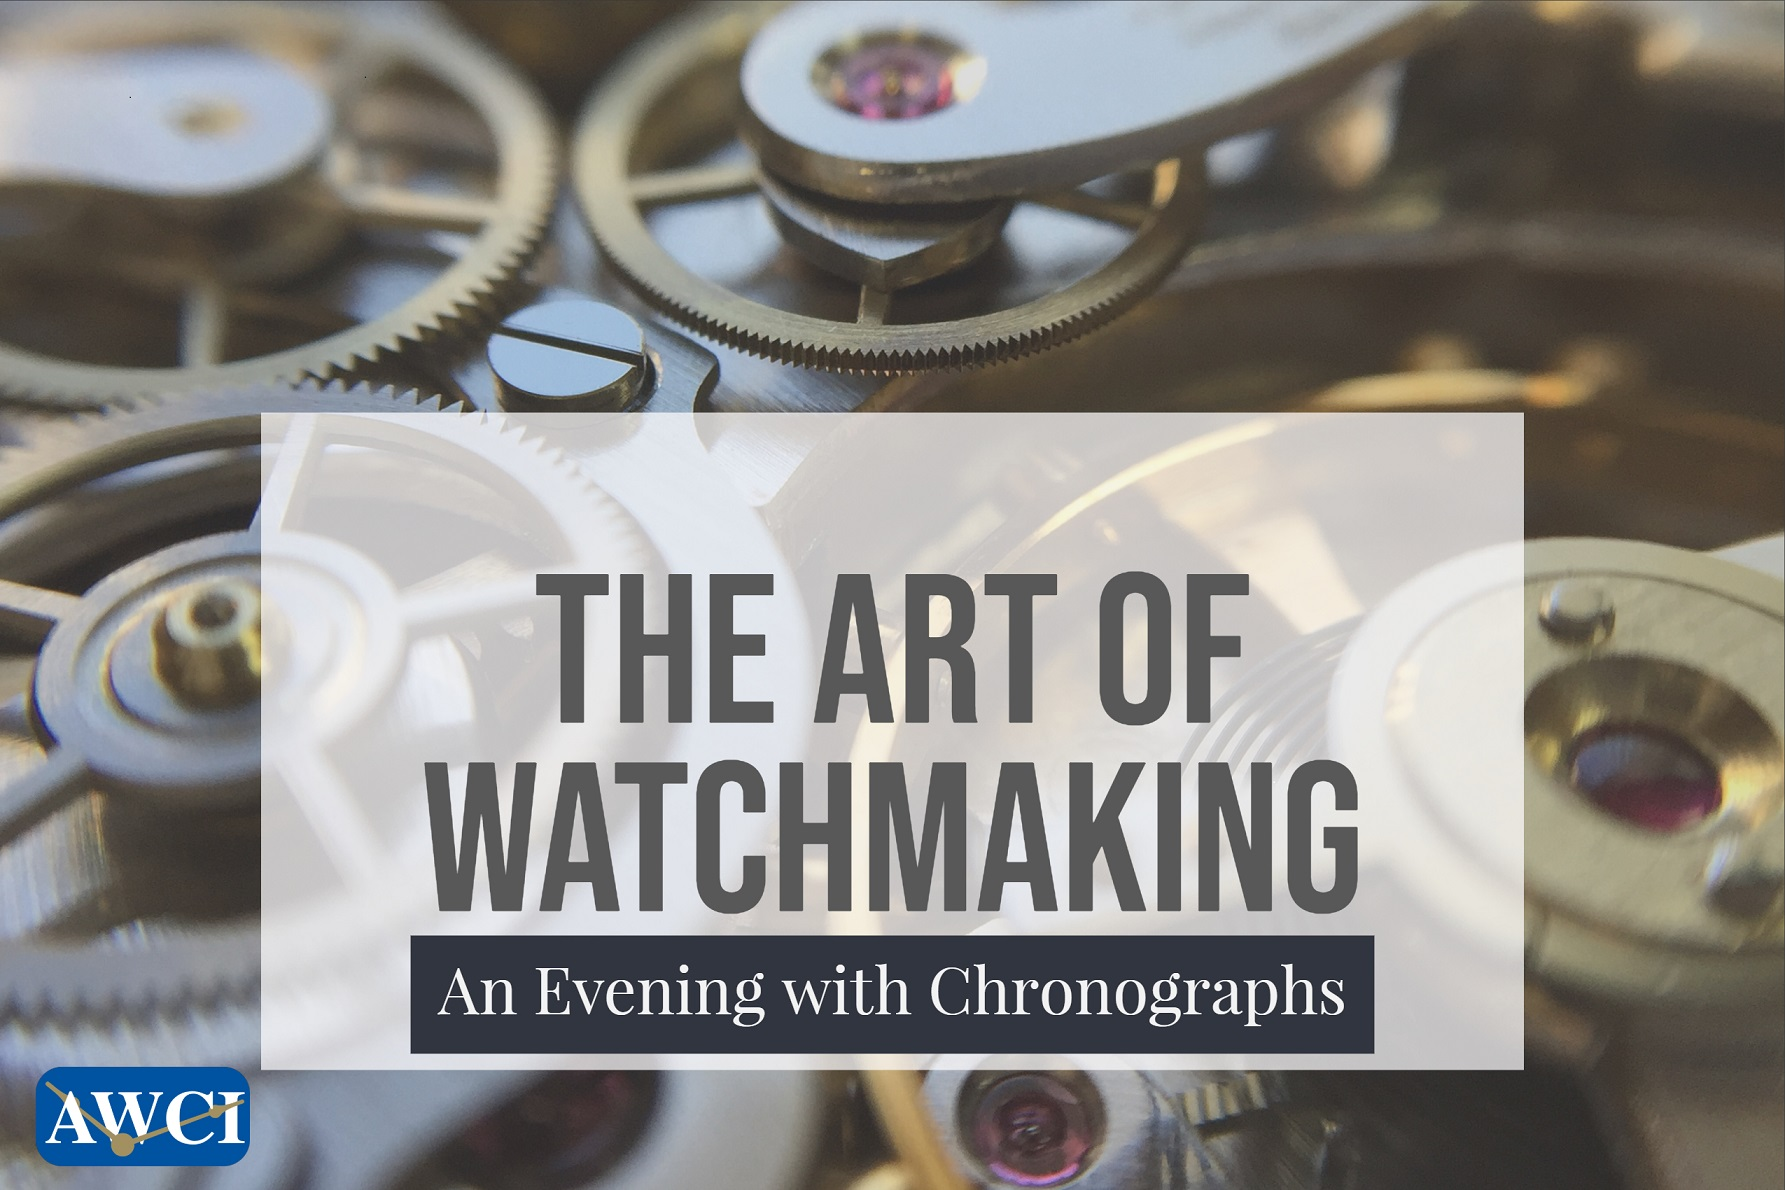 The Art of Watchmaking - An Evening with Chronographs image